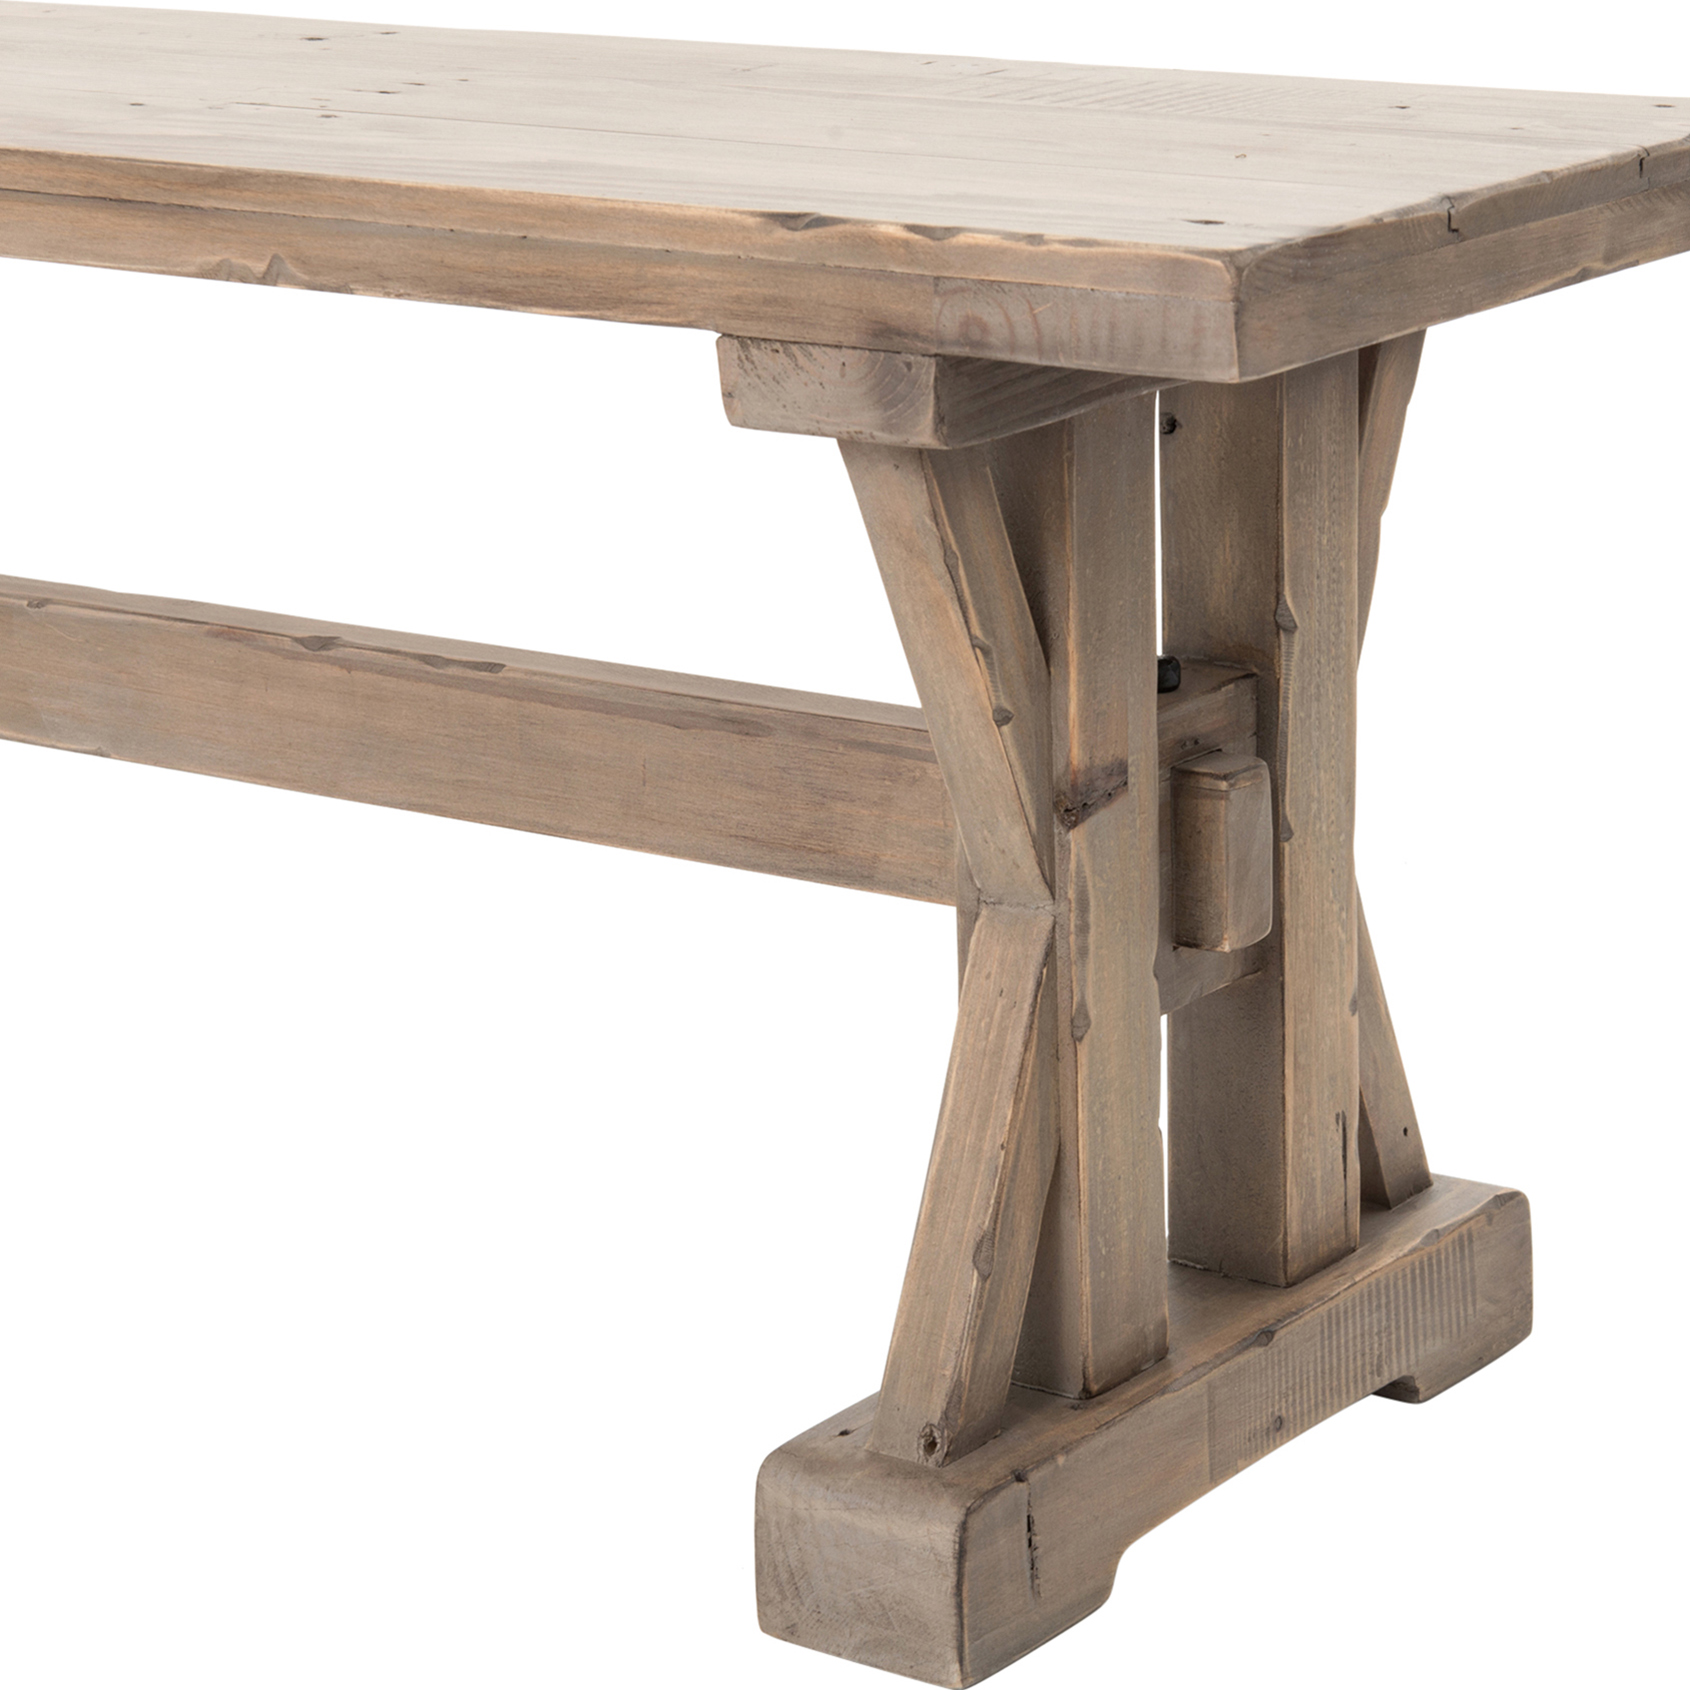 Padgett Rustic French Country Reclaimed Wood Dining Bench